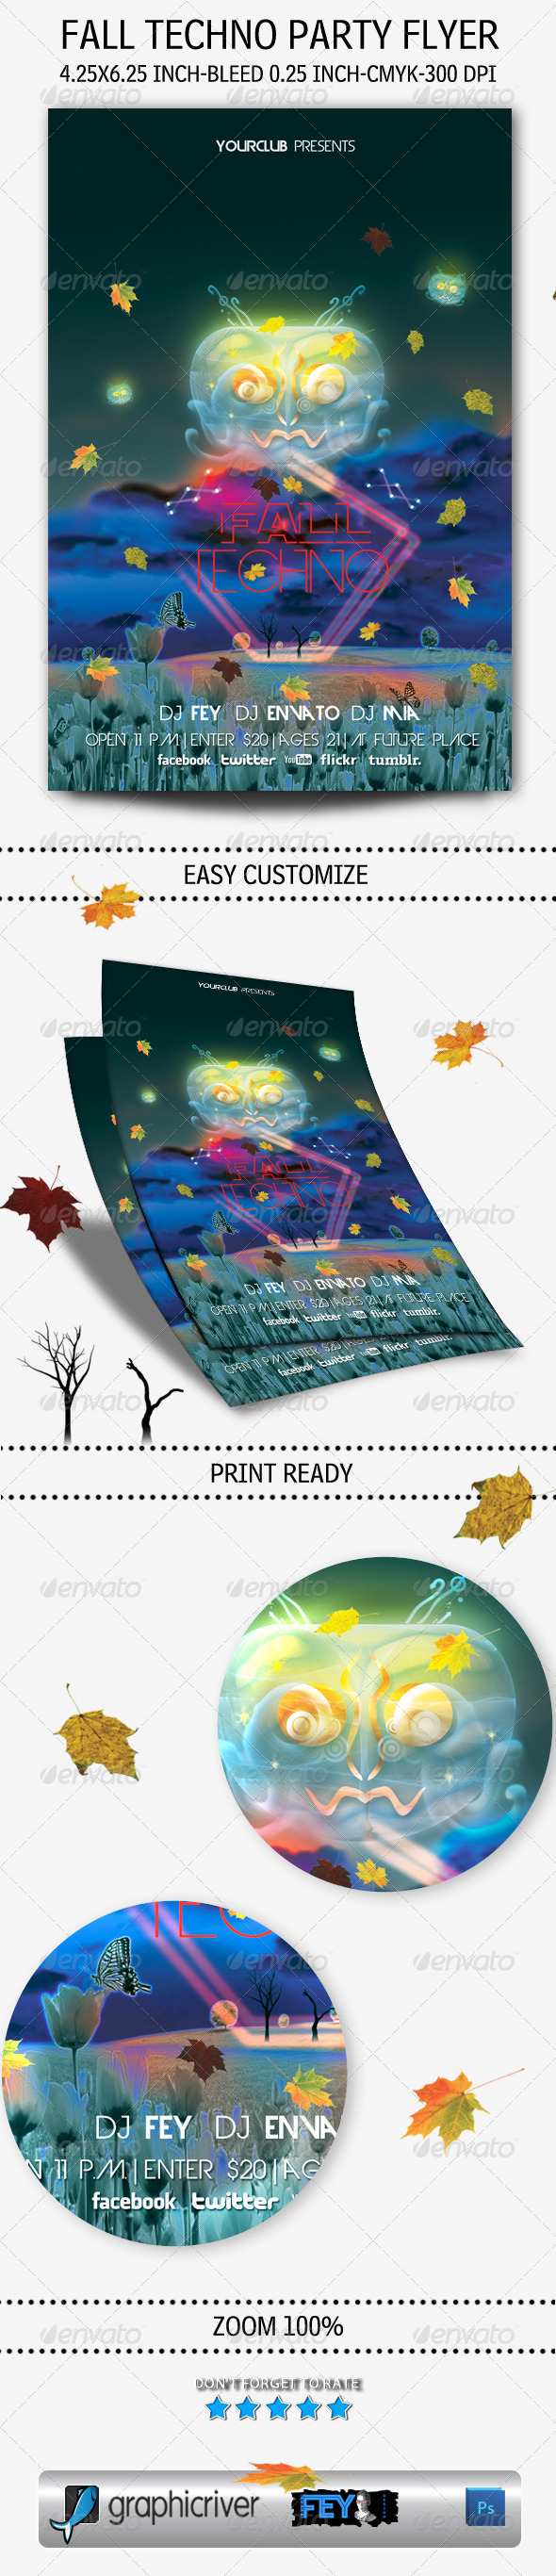 GraphicRiver Fall Techno Party Flyer 5429406